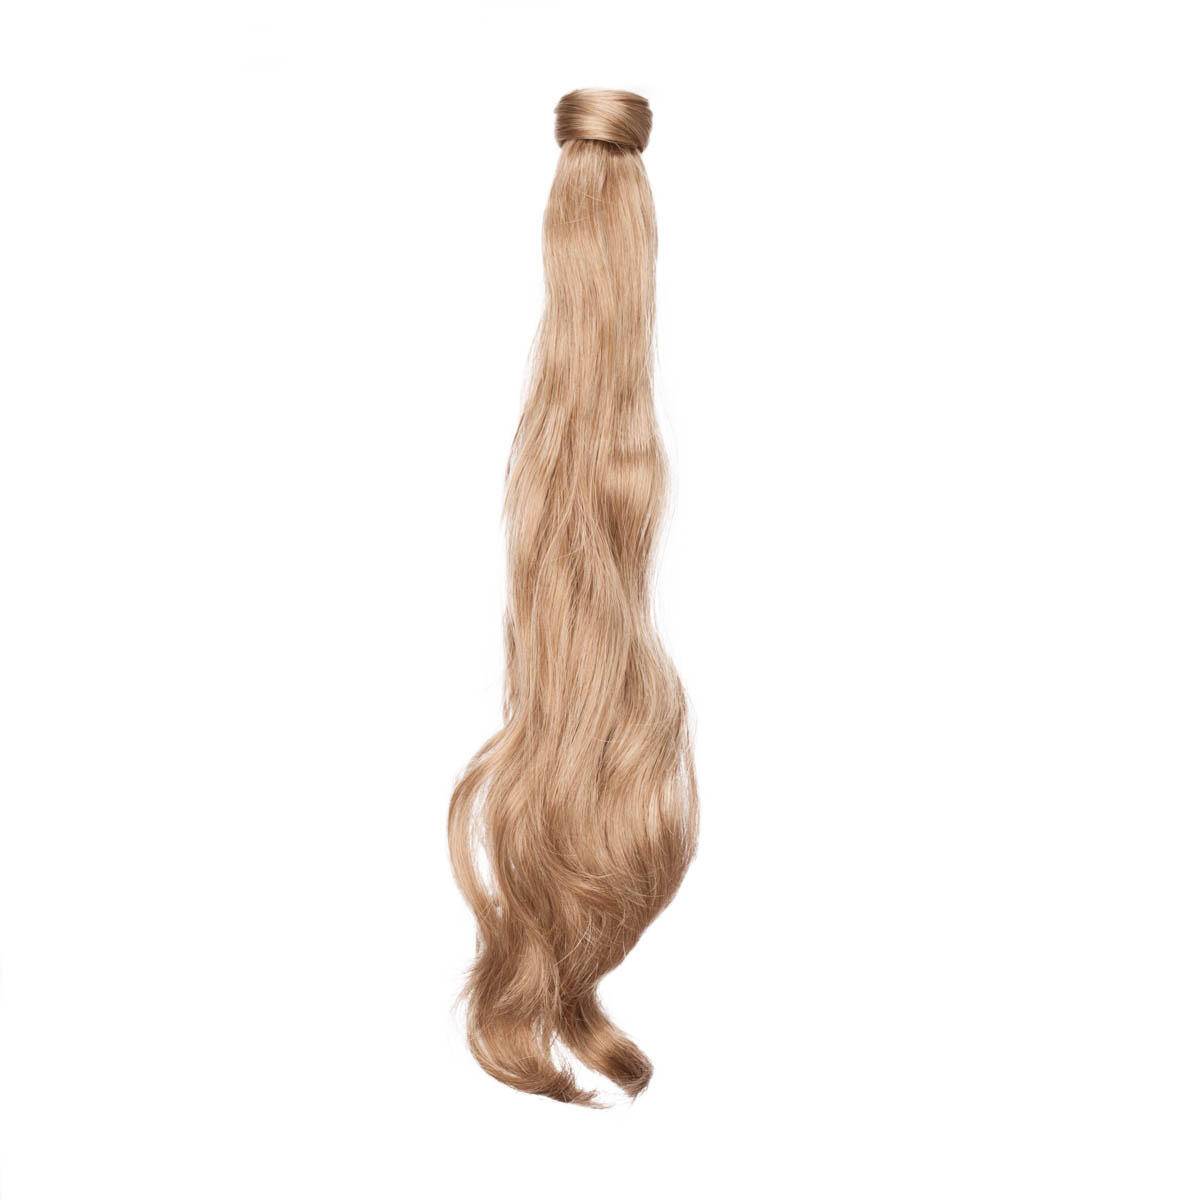 Clip-in Ponytail Synthetic Beach Wave 4.1 Cendre Ash Blonde 50 cm